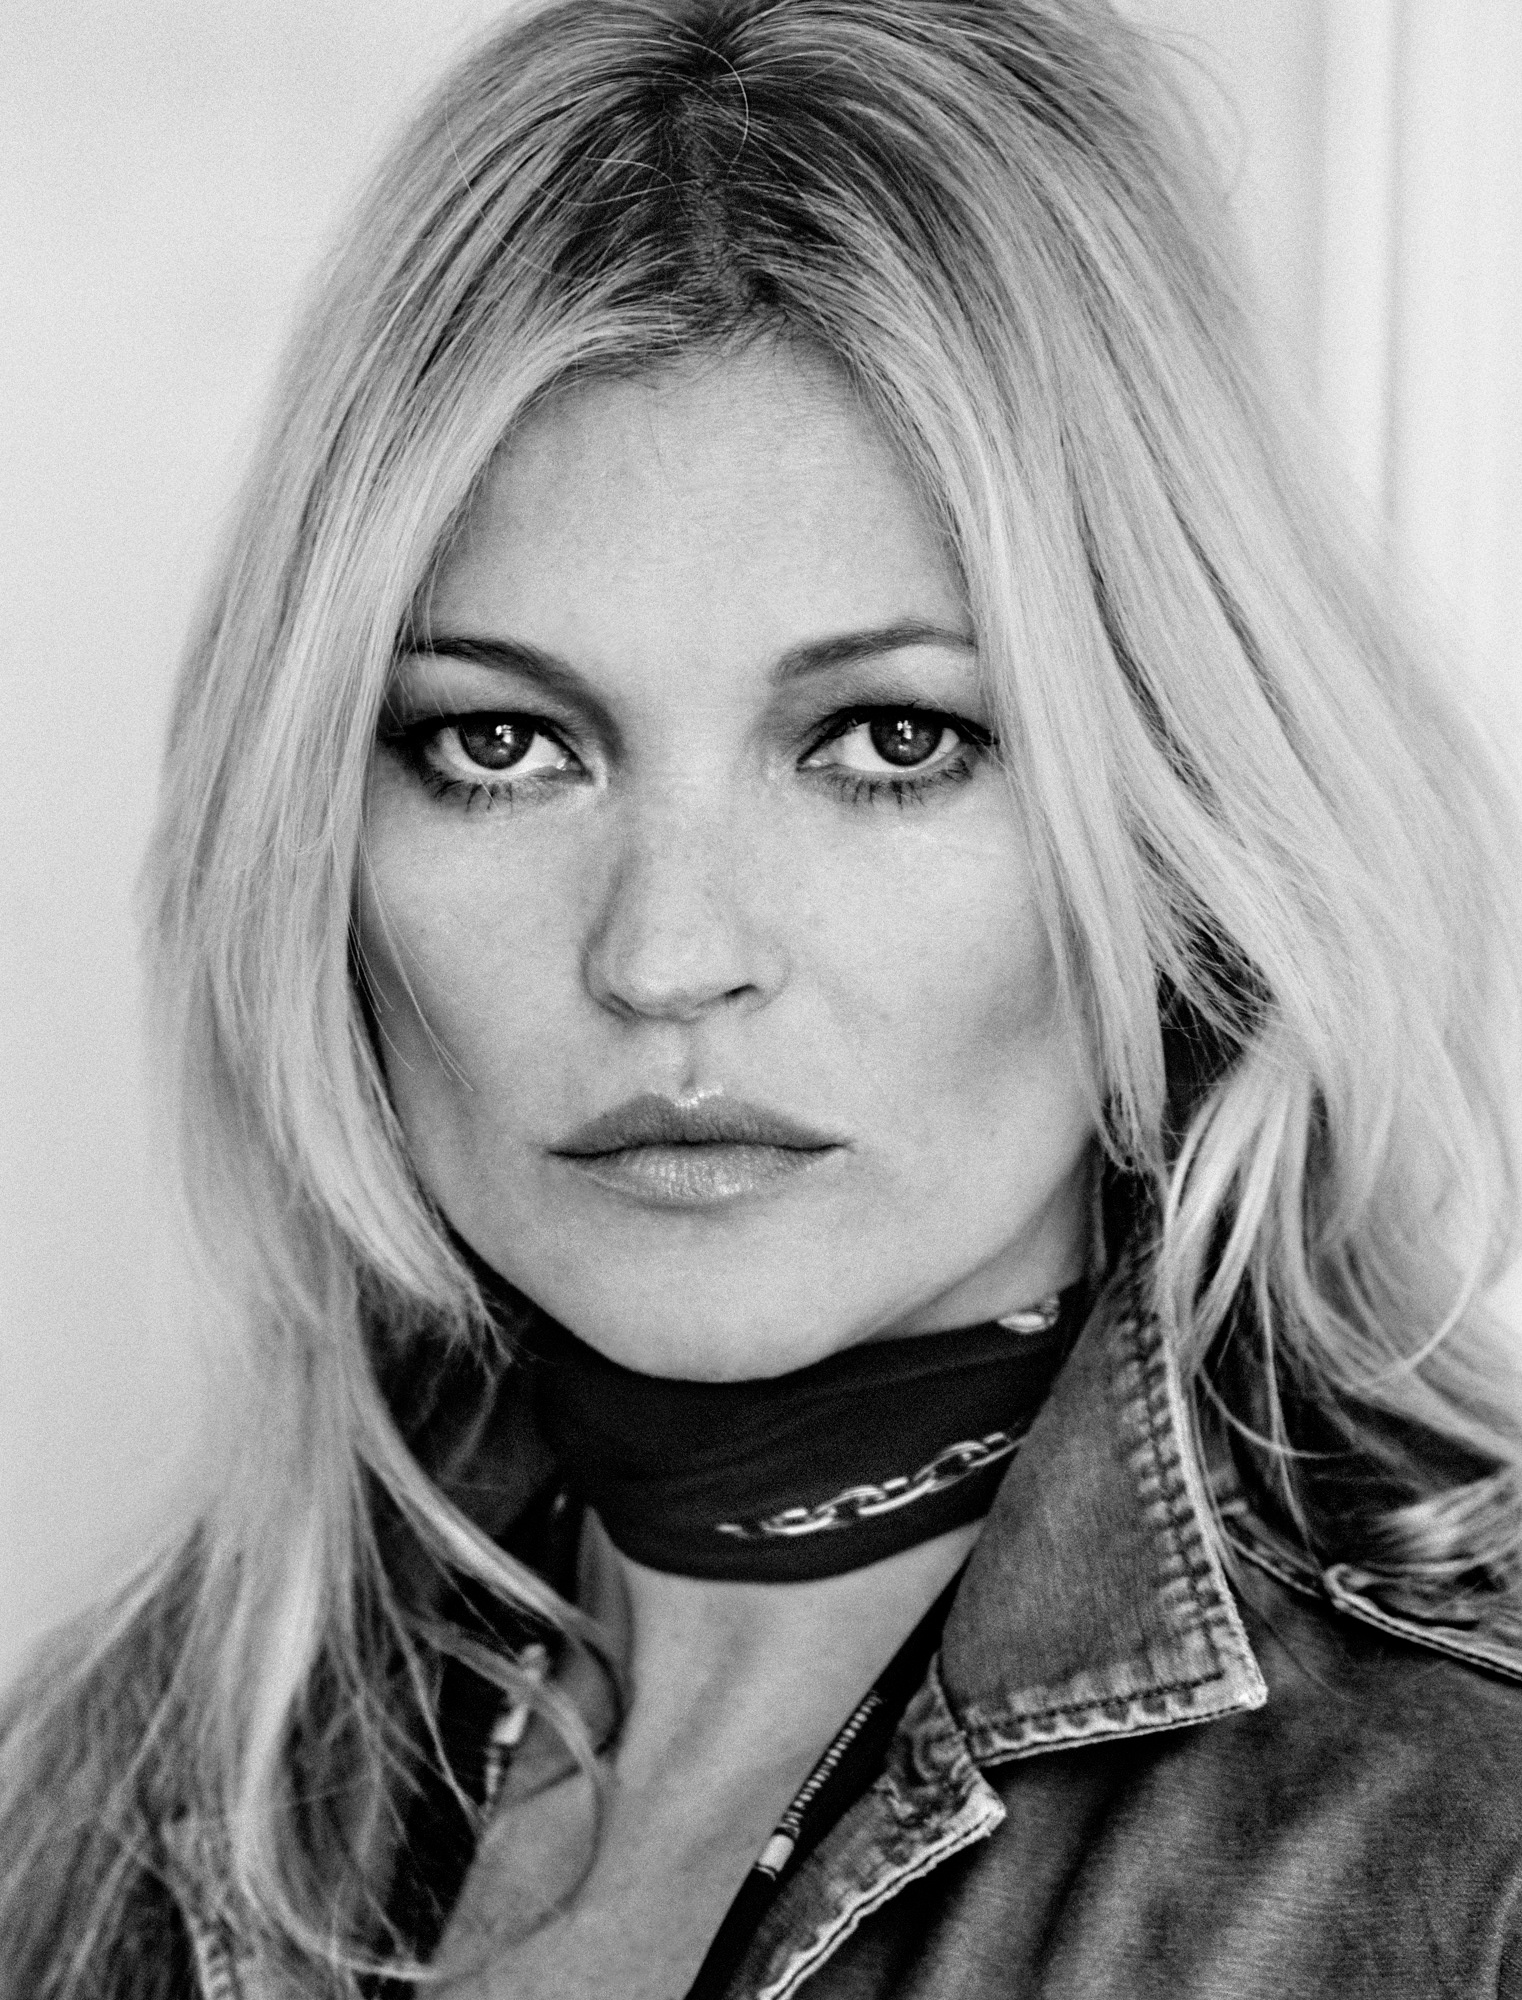 kate-moss-by-chris-colls-for-the-edit-june-2016-4.jpg